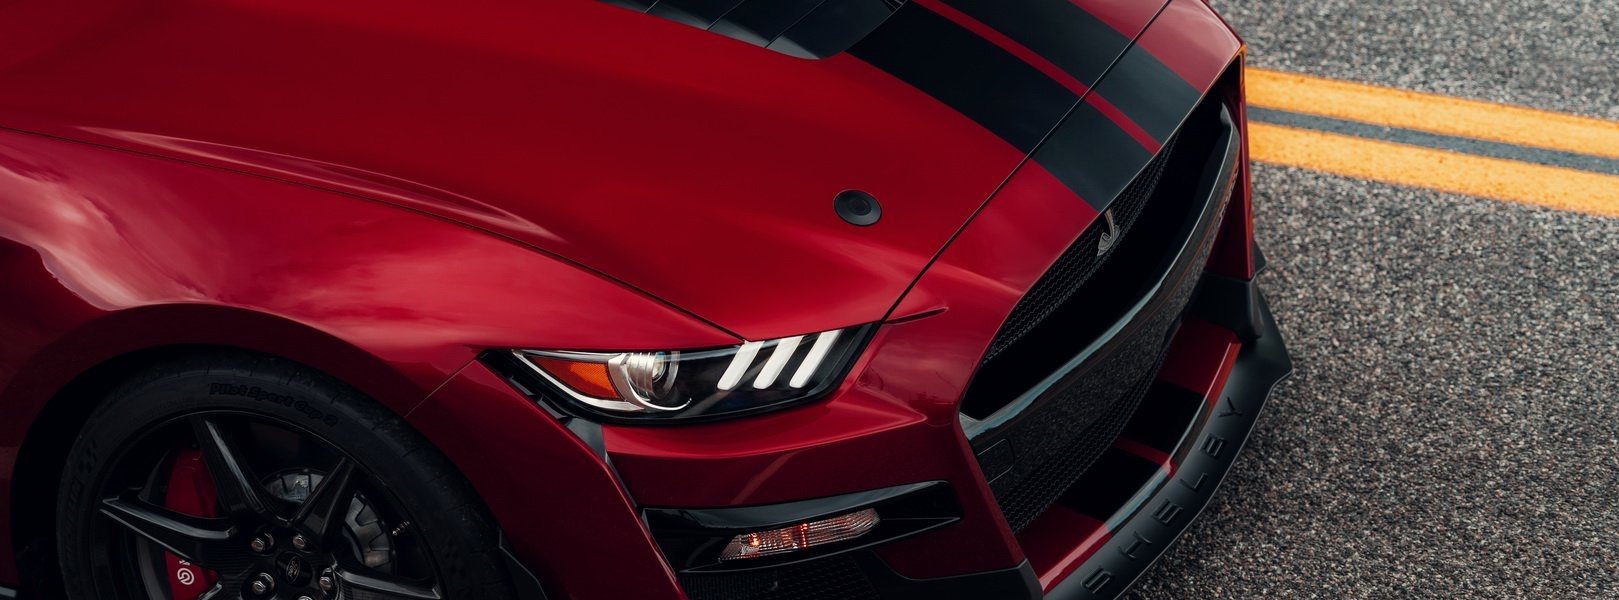 2020-ford-mustang-shelby-gt500-4.jpg